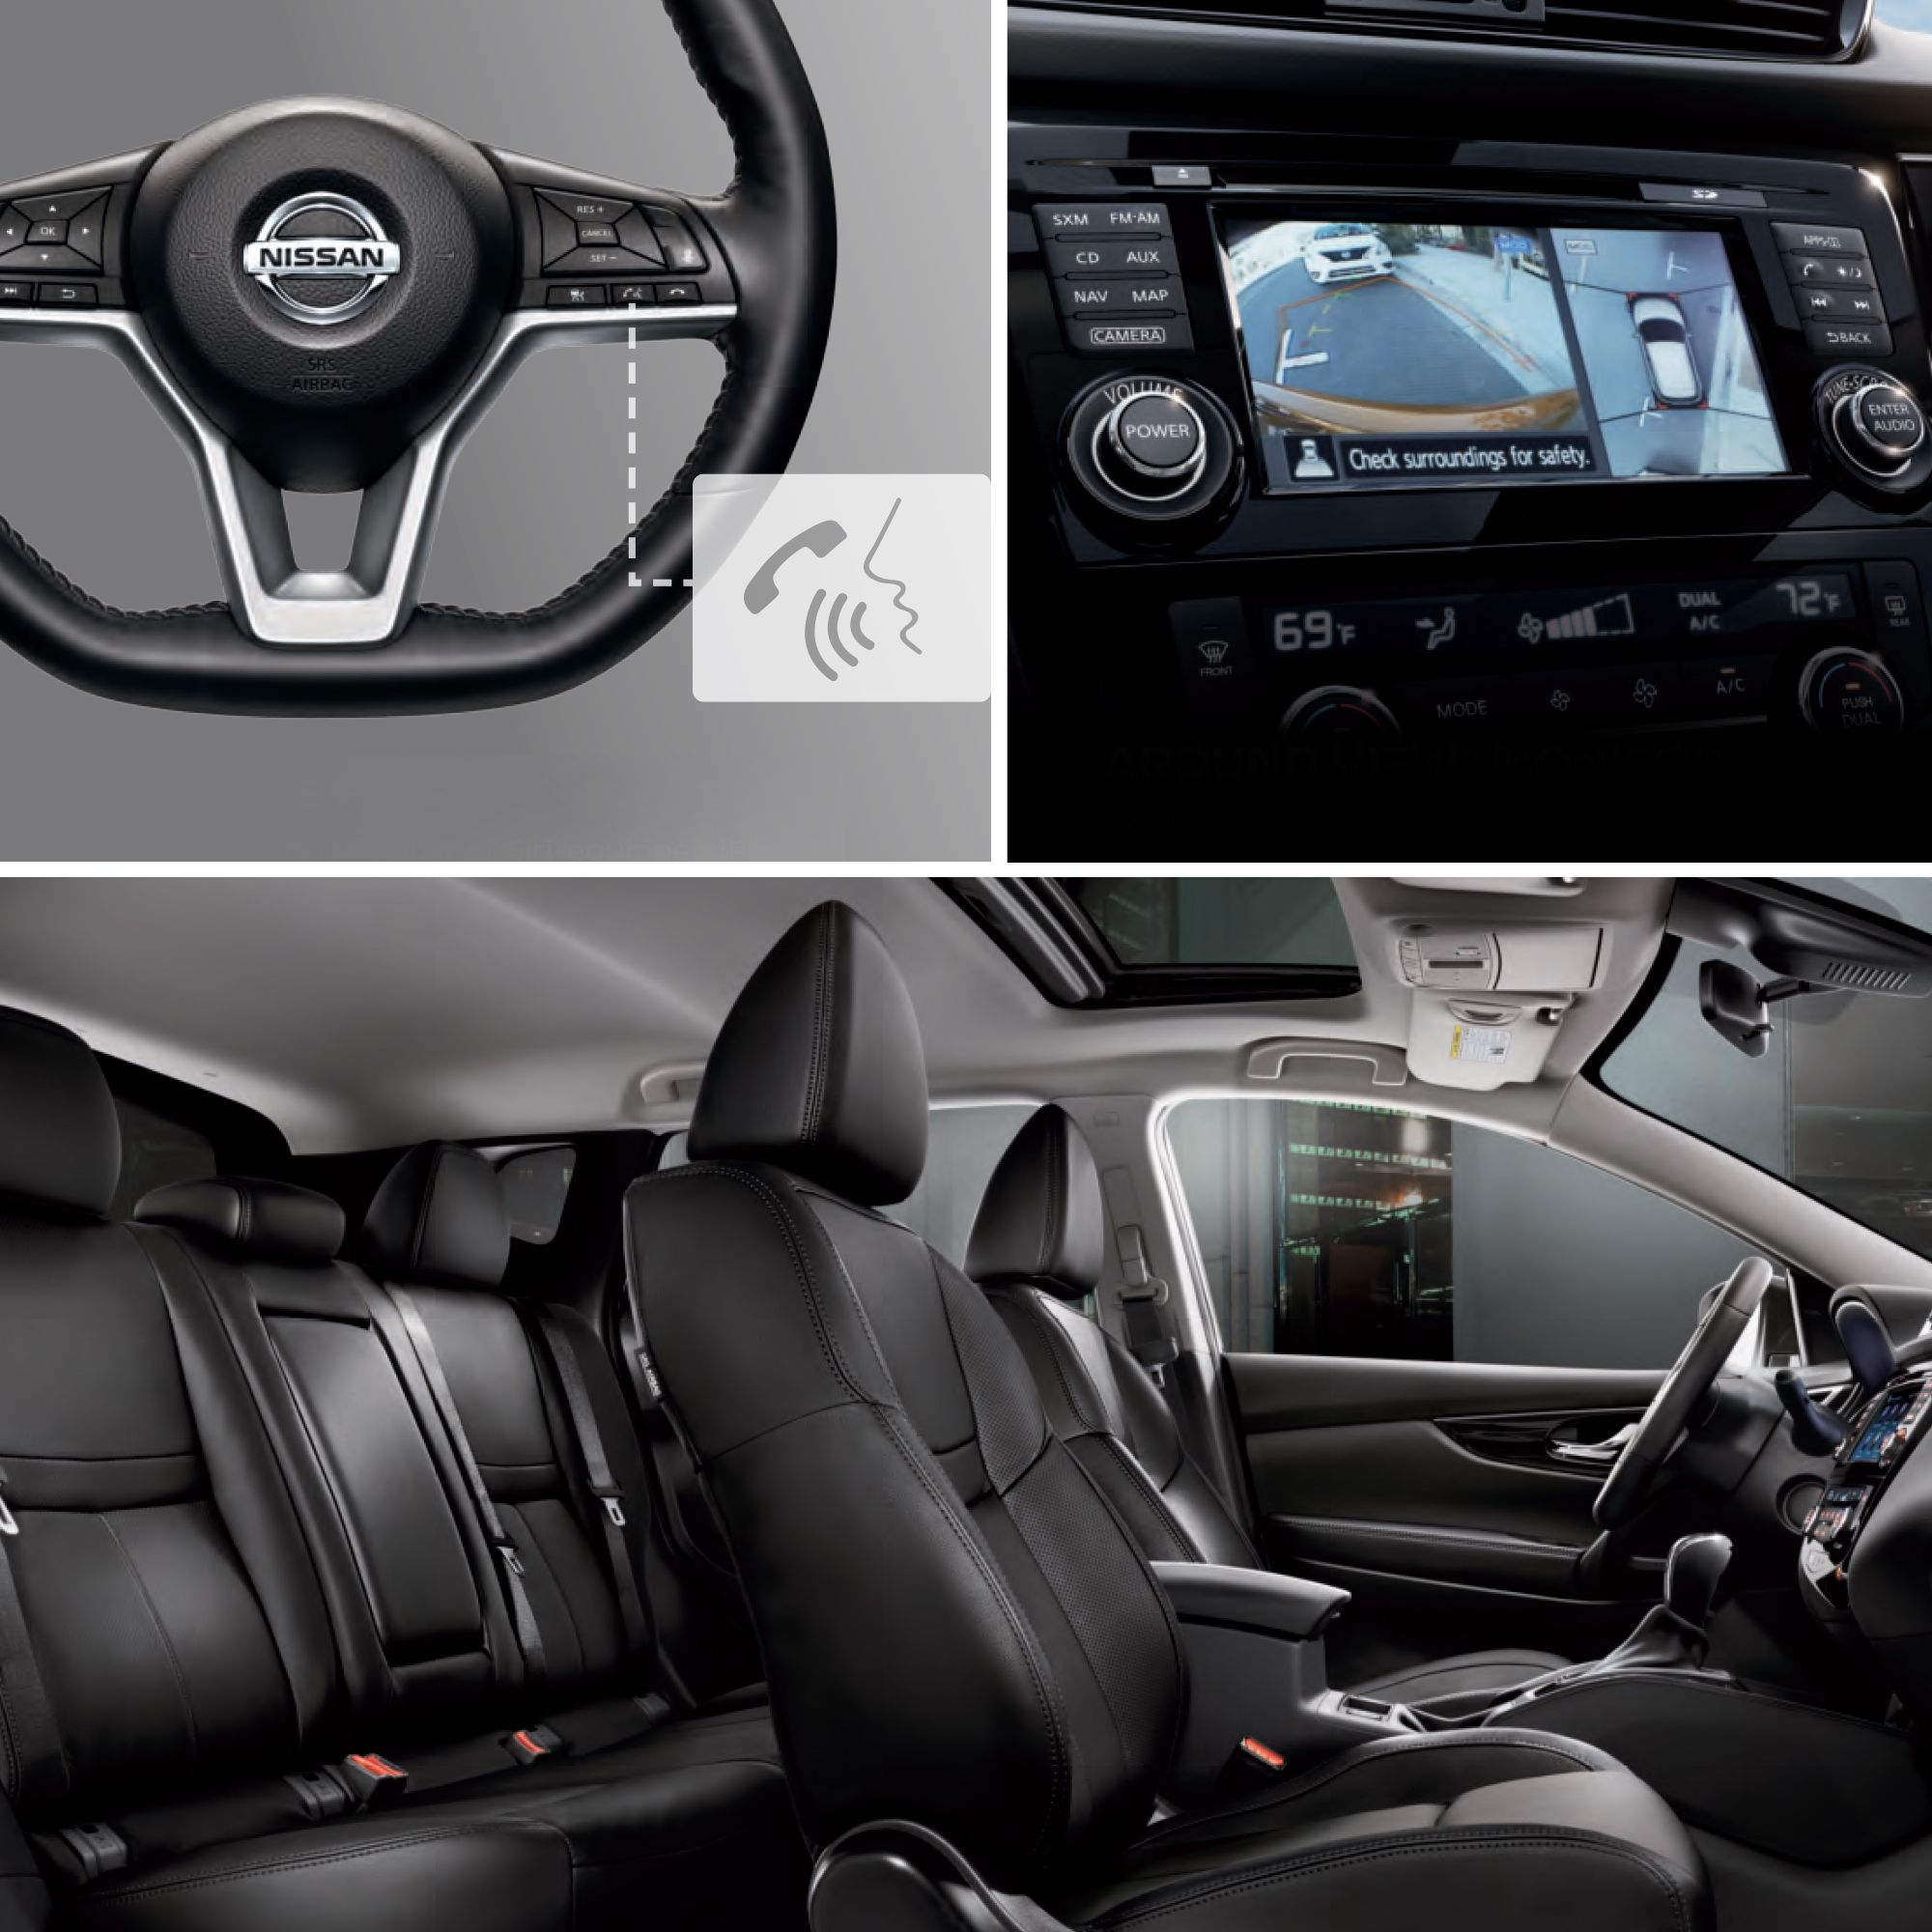 STAY CONNECTED: 2017 Nissan Rogue Sport Interior technology